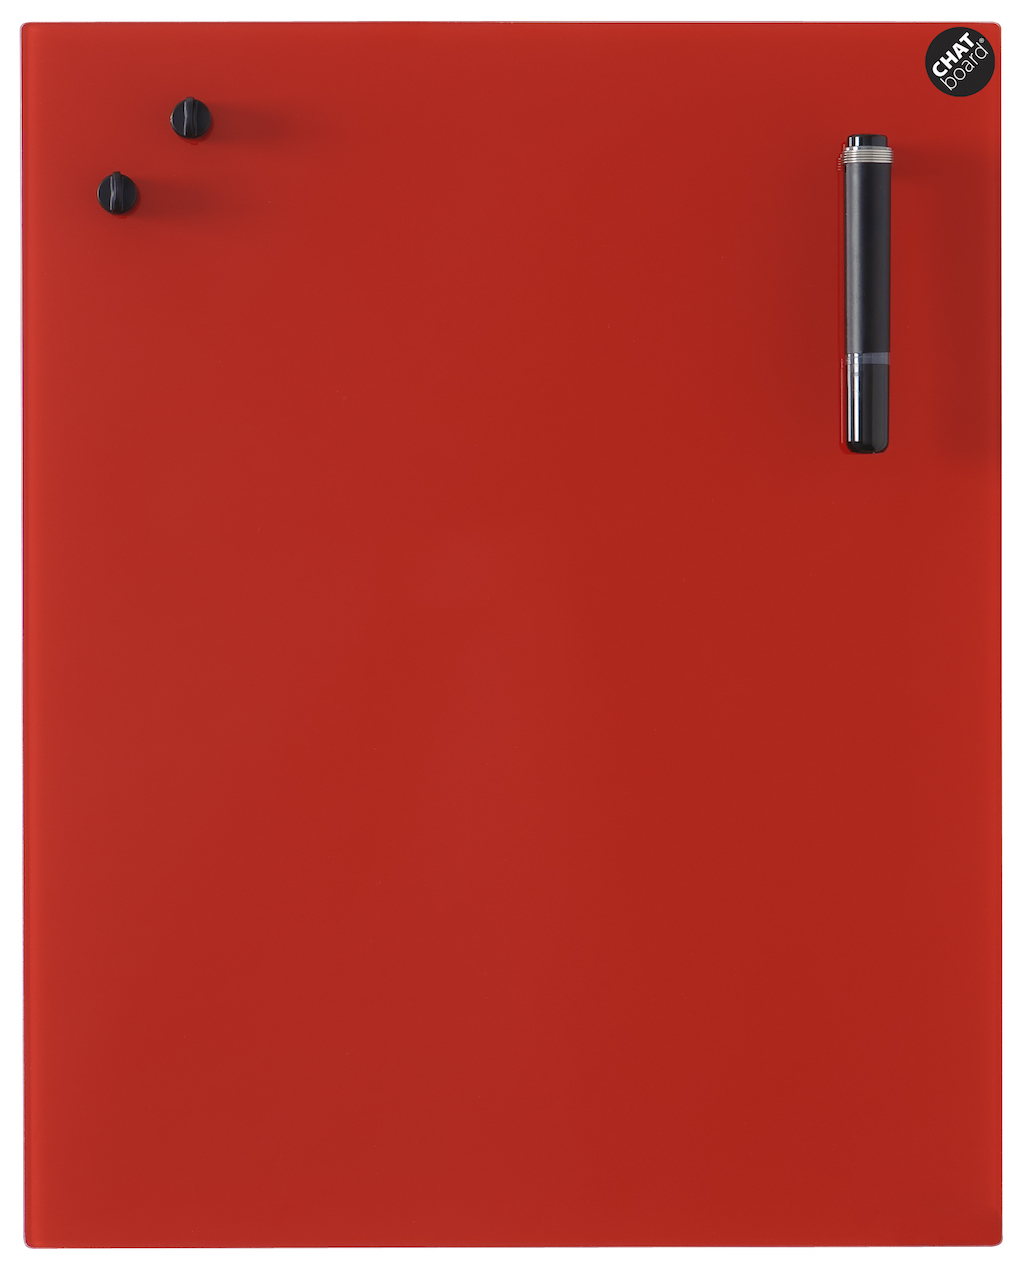 CHAT BOARD® – Red